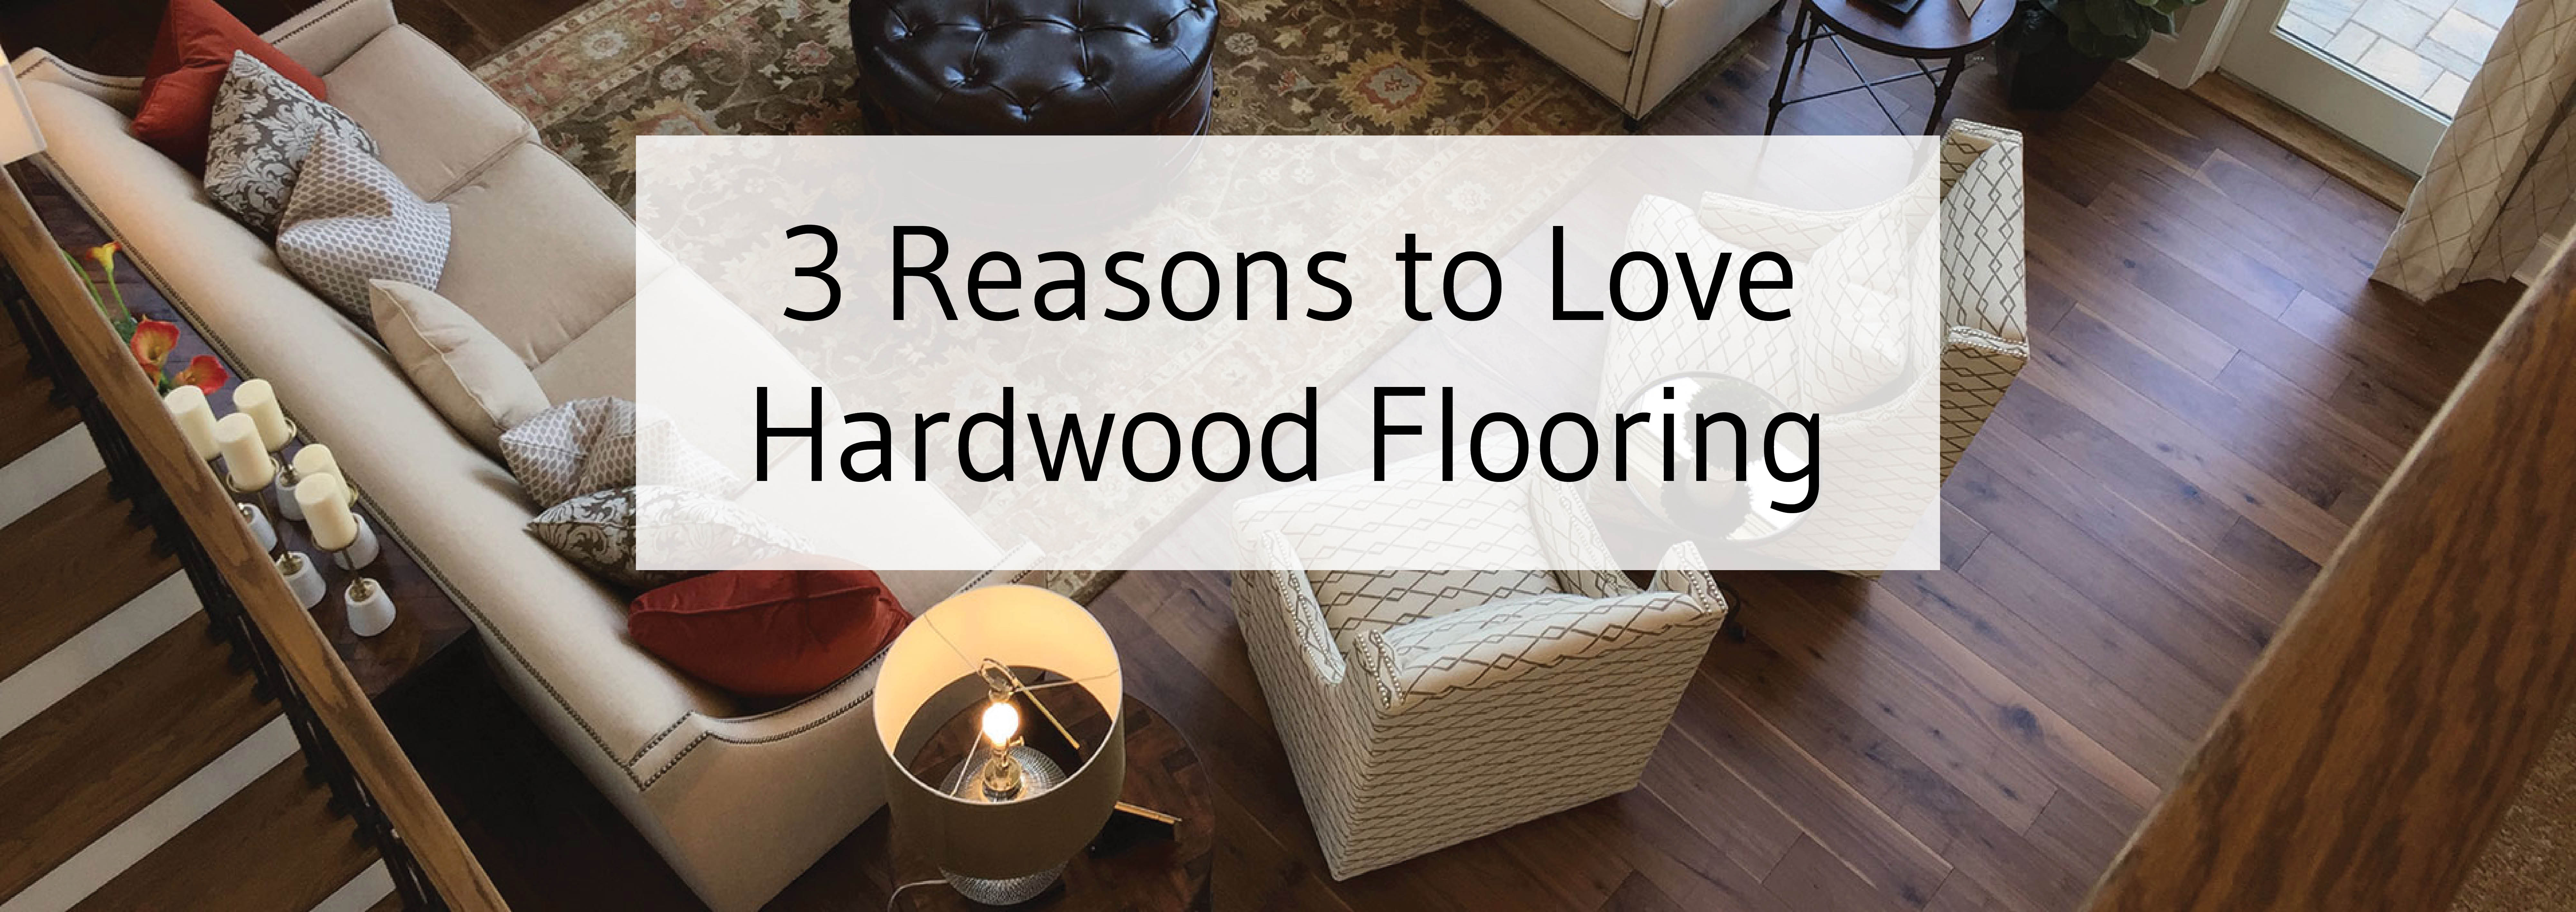 Tesoro Woods Hardwood Flooring | Reasons to Love Hardwood Flooring